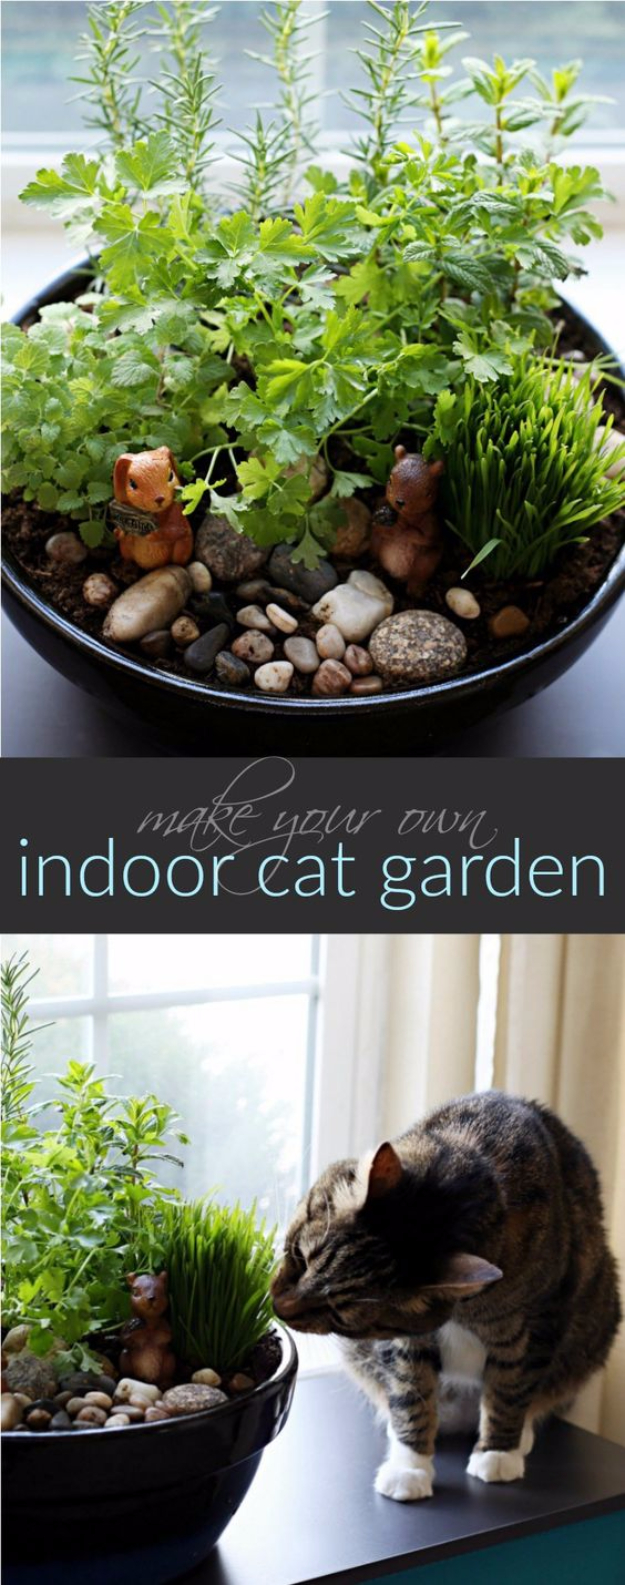 DIY Cat Hacks - Make Your Own Cat Indoor Catnip Garden - Tips and Tricks Ideas for Cat Beds and Toys, Homemade Remedies for Fleas and Scratching - Do It Yourself Cat Treat Recips, Food and Gear for Your Pet - Cool Gifts for Cats